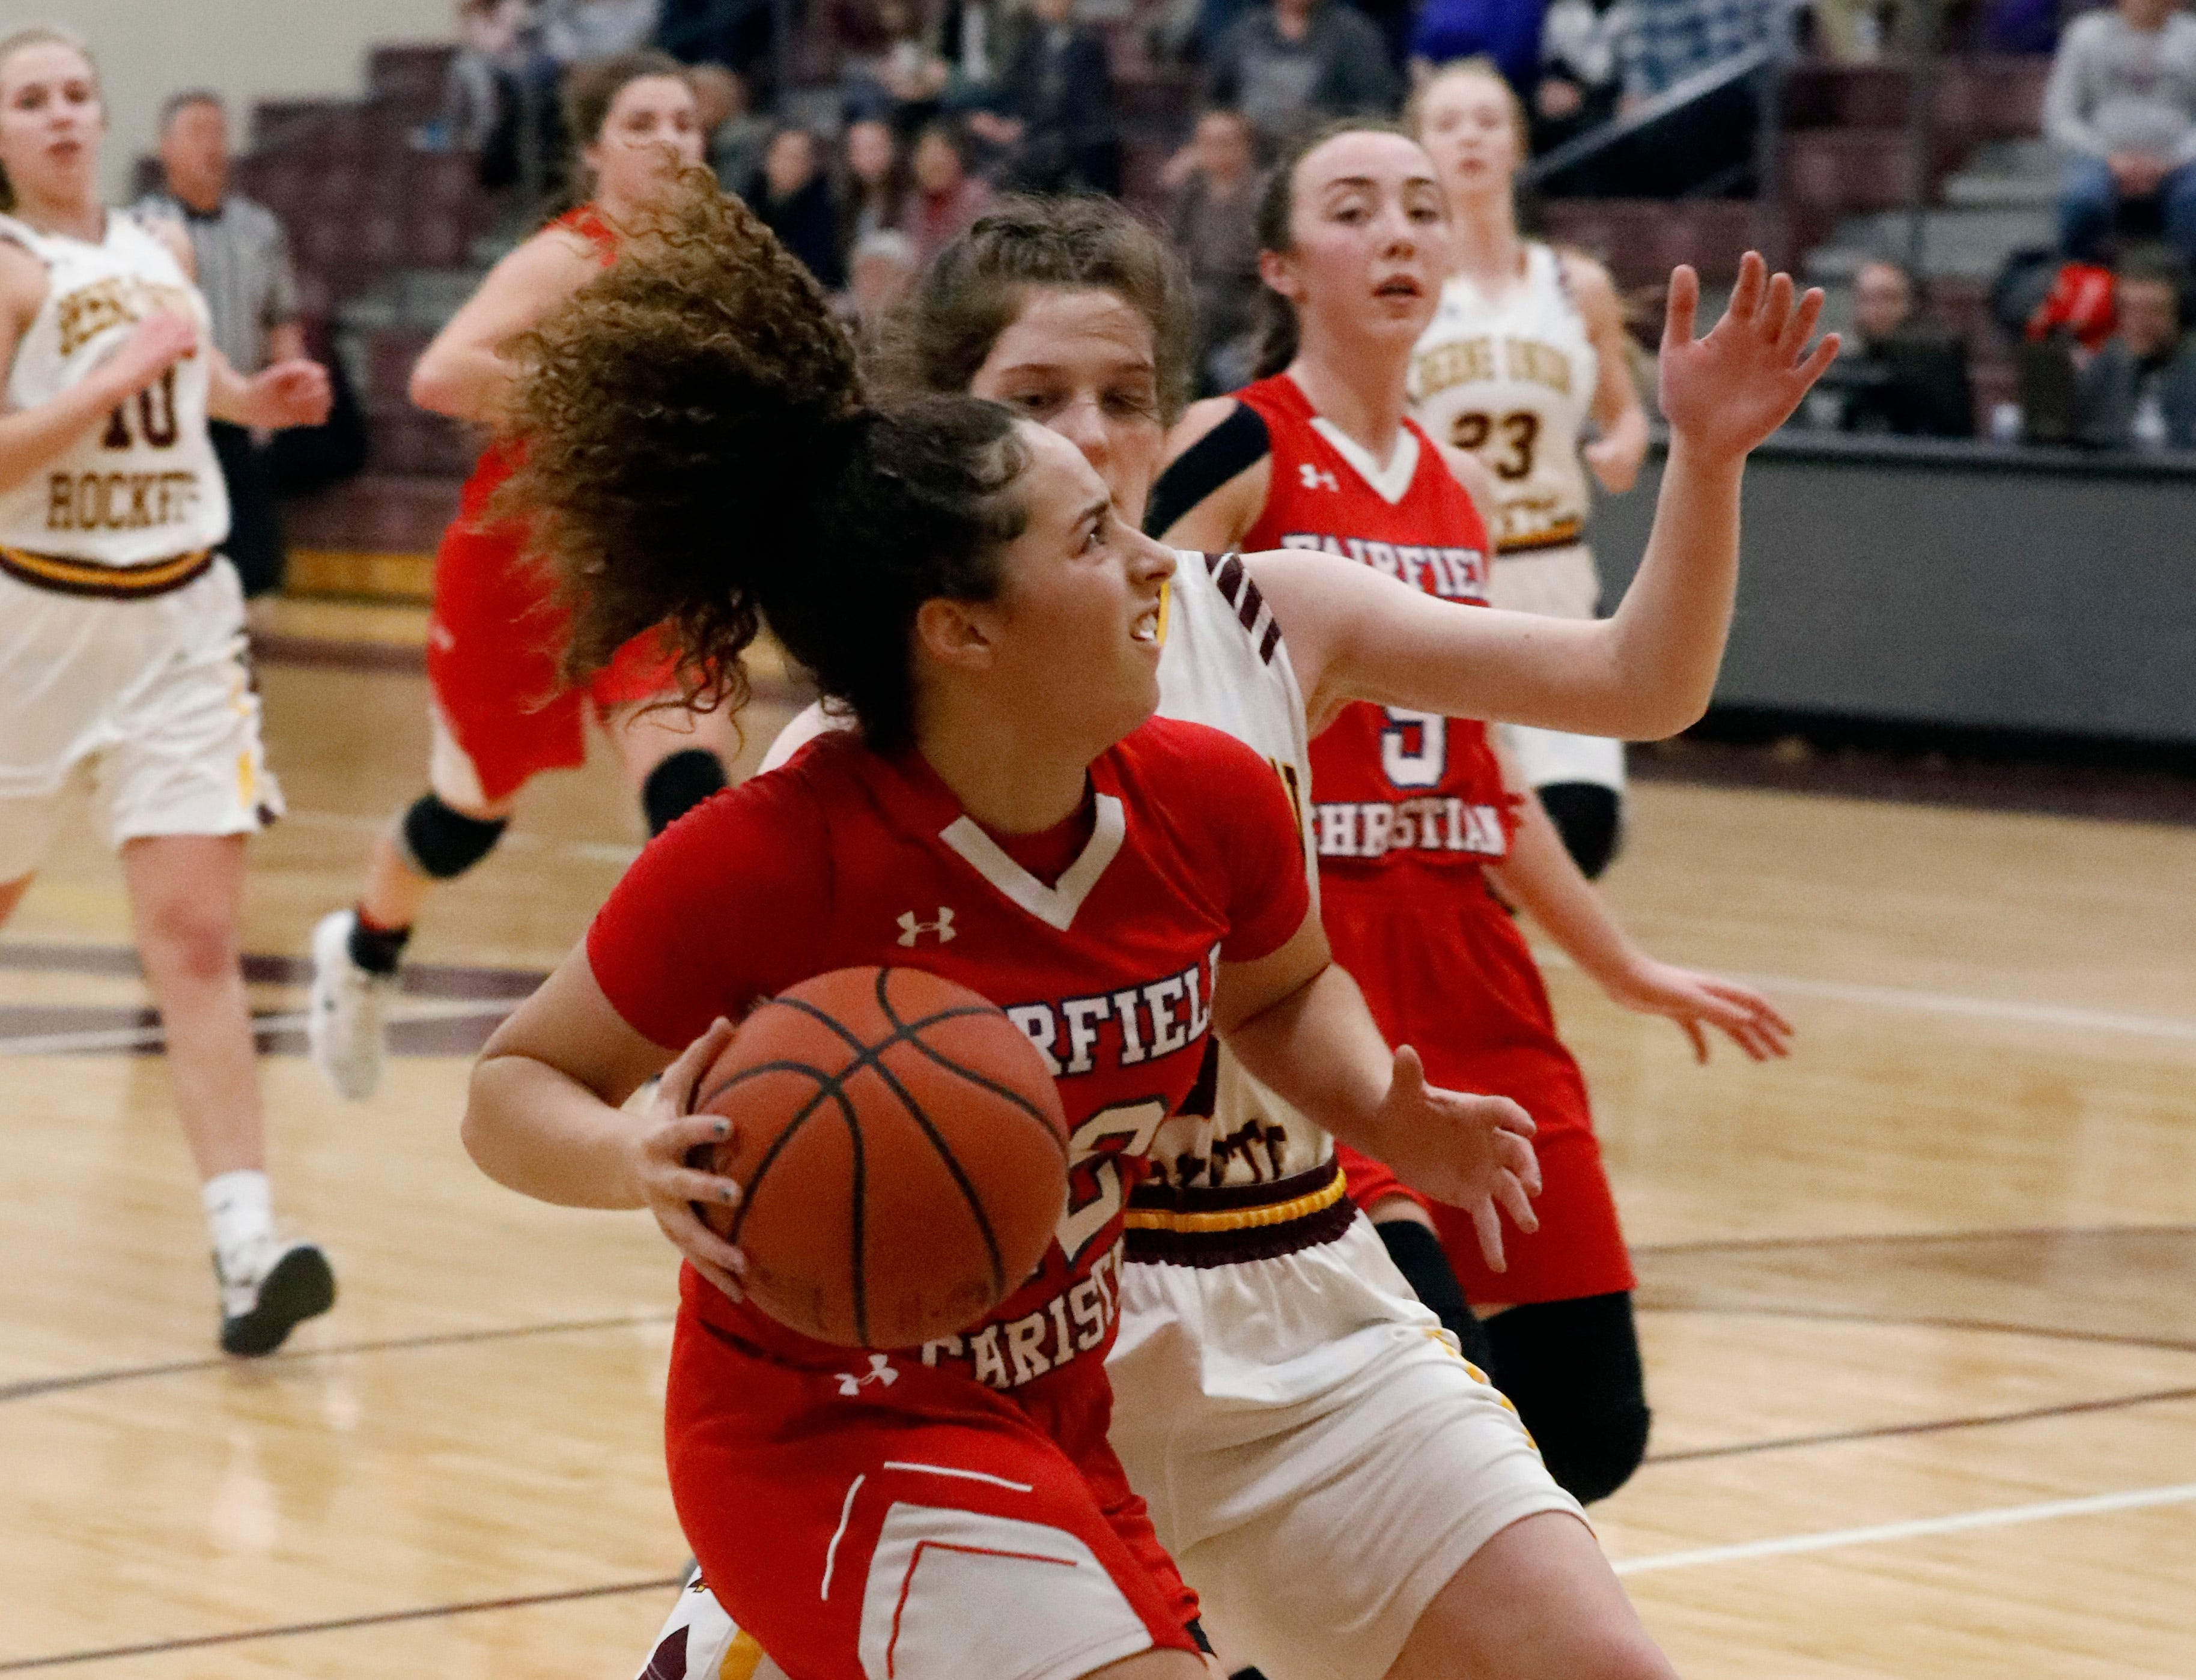 Fairfield Christian's Celeste Mershimer drives past Berne Union's Mya Staten during Tuesday night's game, Jan. 29, 2019, at Berne Union High School in Sugar Grove. The Knights defeated the Rockets 84-37.